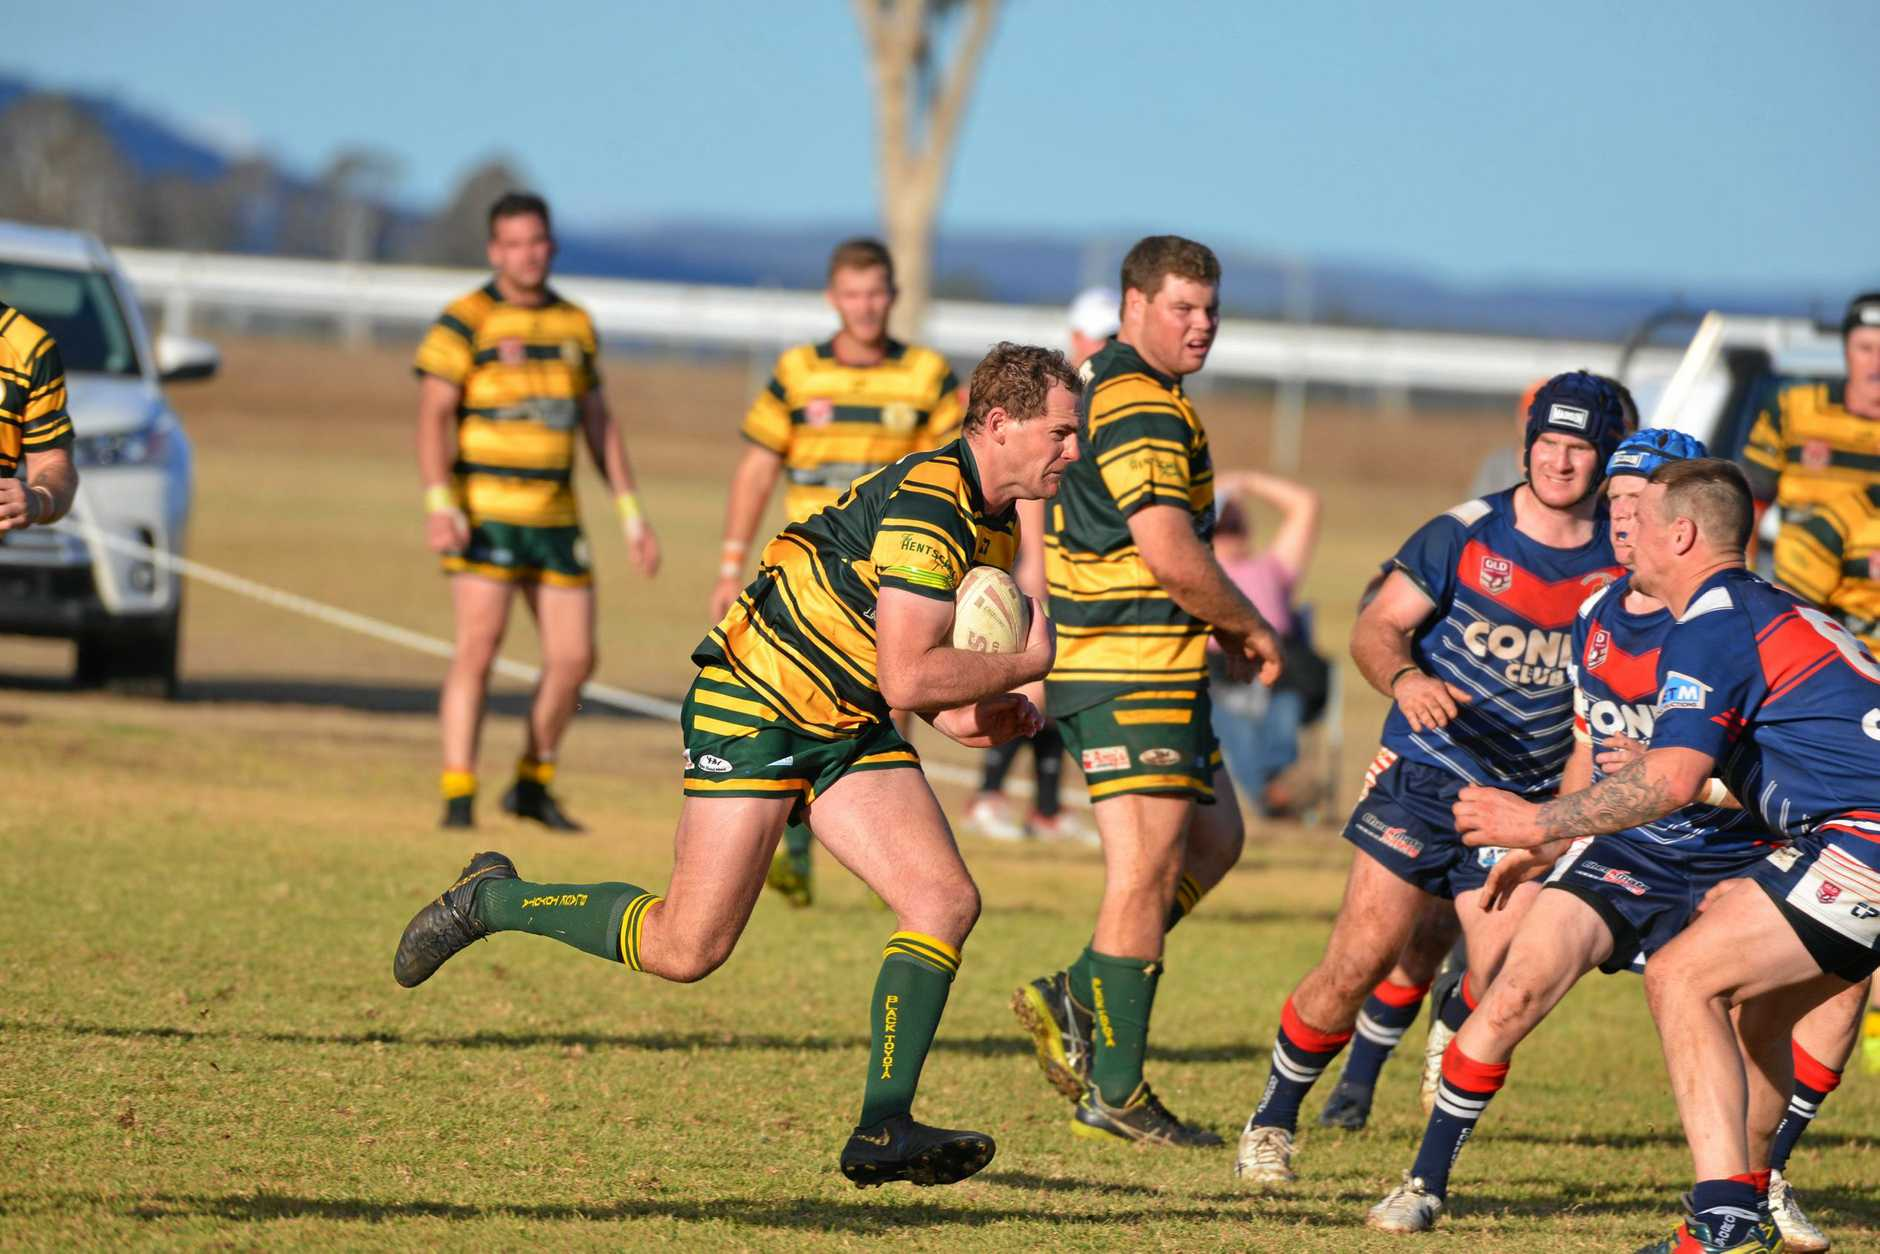 Wattles co-captain Dale Perkins runs hard in a 42-6 win against Warwick in A grade at Platz Oval.